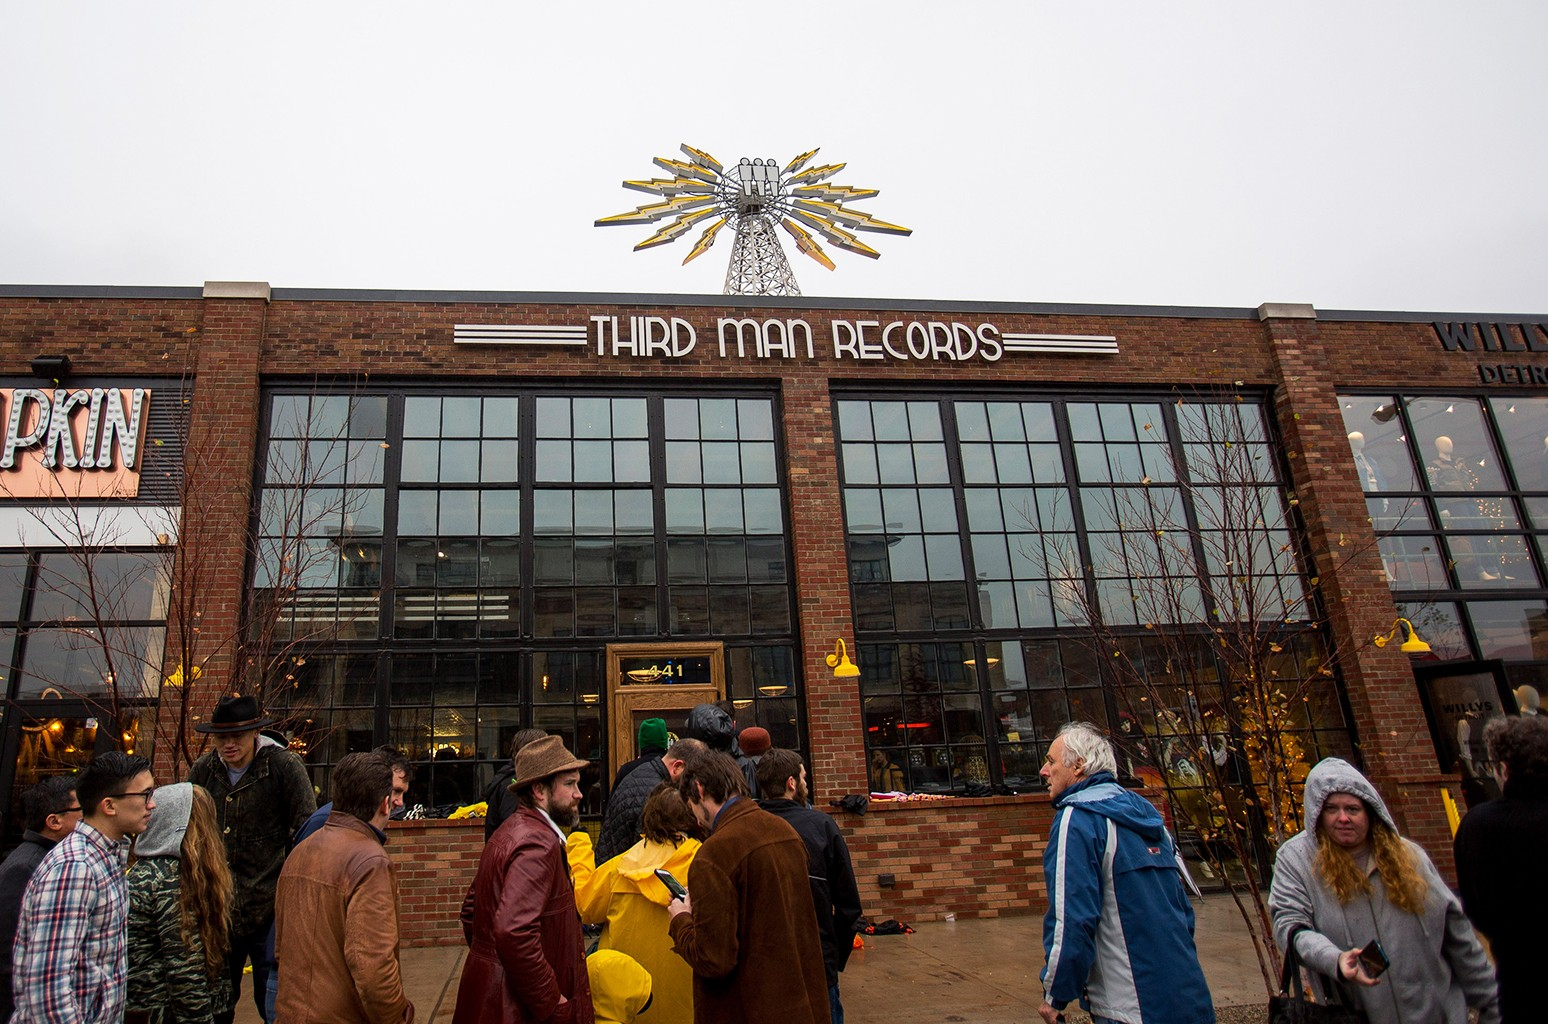 General view of Third Man Records during the grand opening in Detroit on Nov. 27, 2015 in Detroit, Michigan.